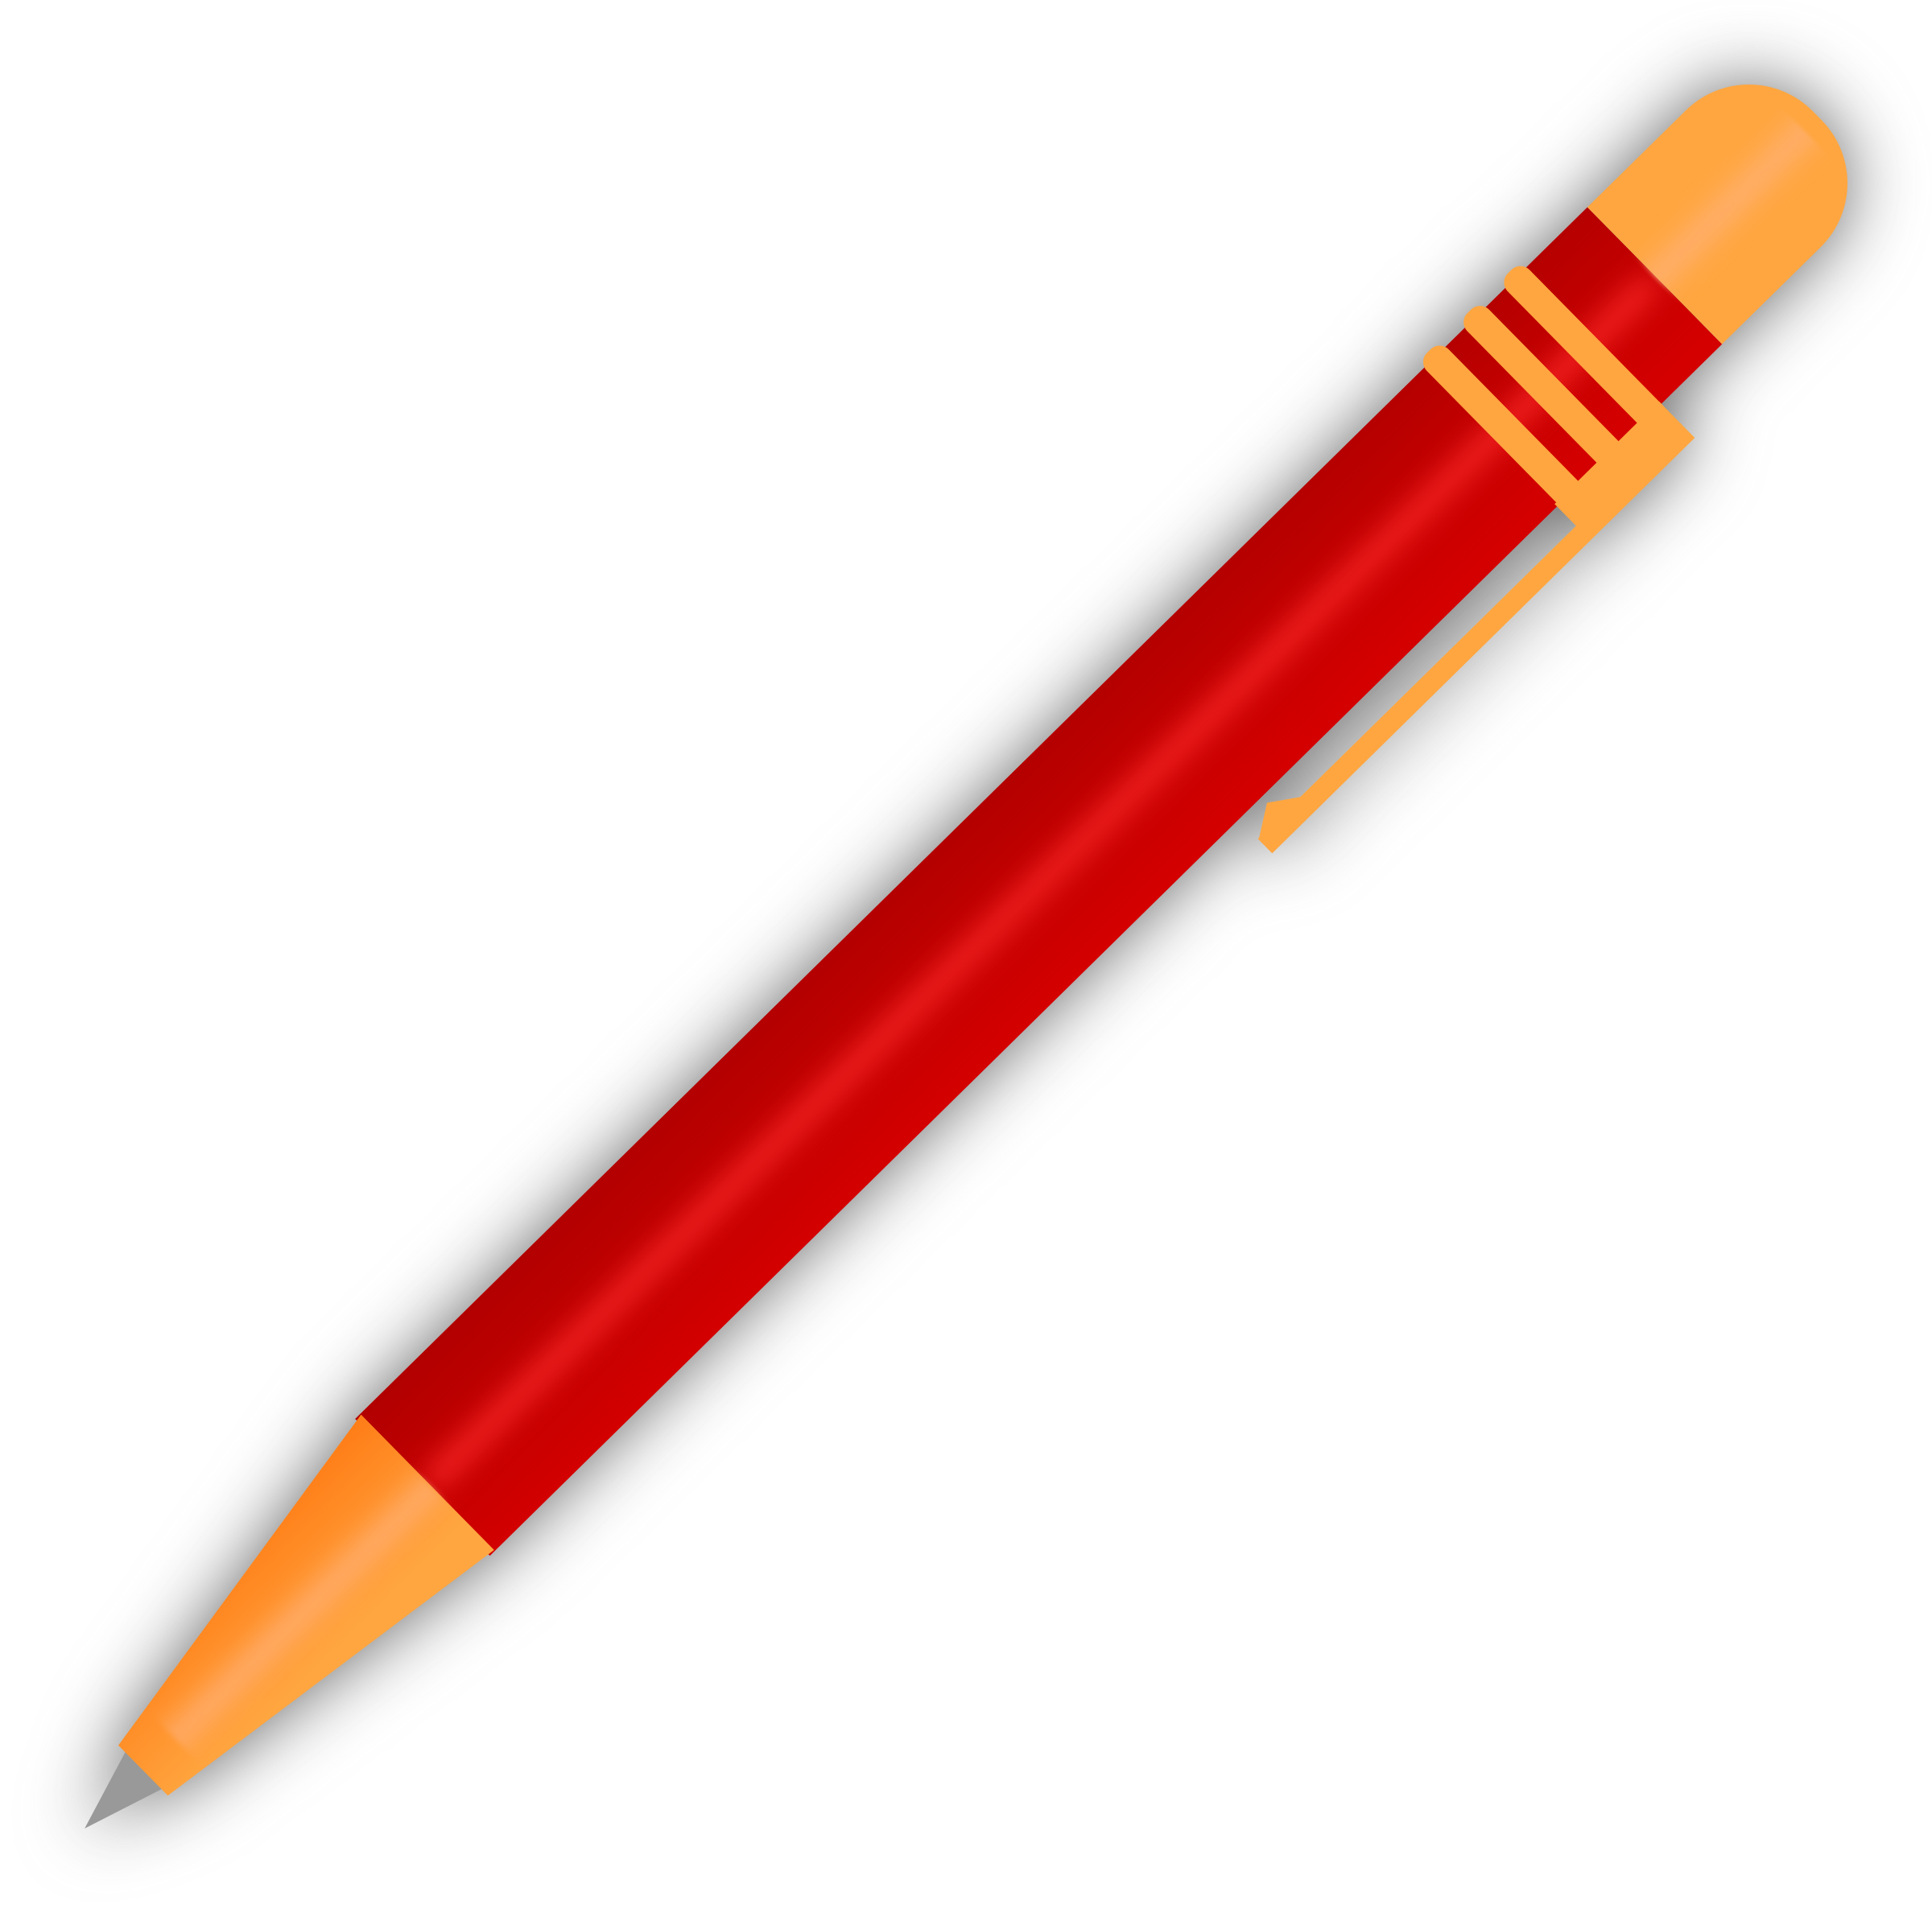 Ball point pen clipart - Clipground